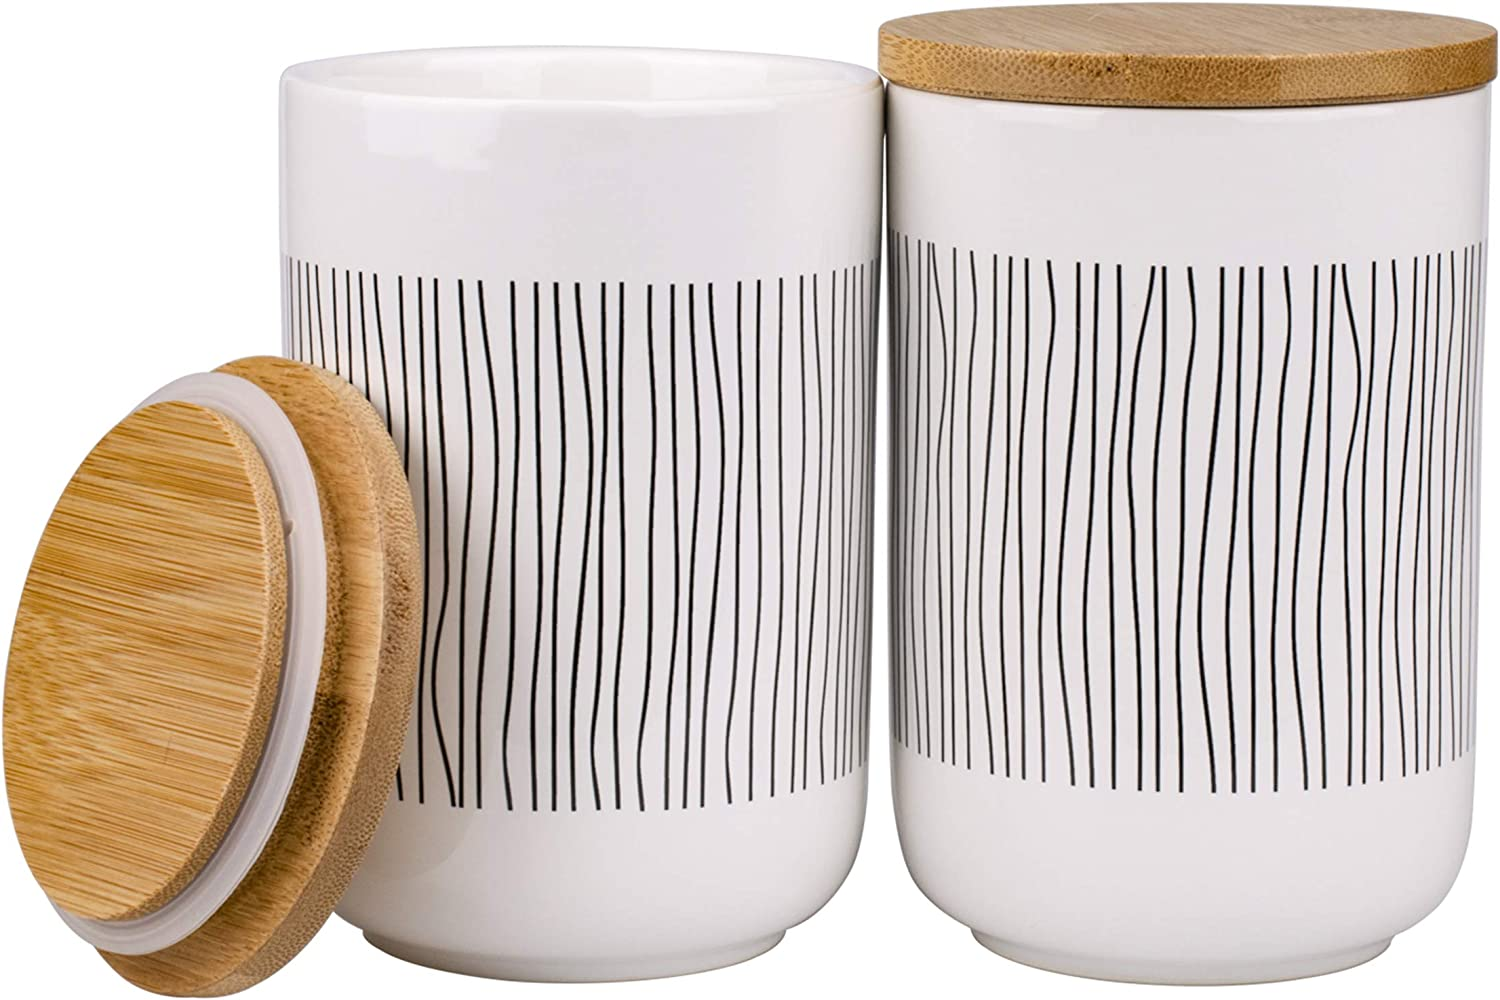 Lawei 2 Pack Ceramic Food Storage Jars with Bamboo Lids - 17 Oz Ceramic Canisters Storage Jars for Coffee, Sugar, Tea, Spice and More